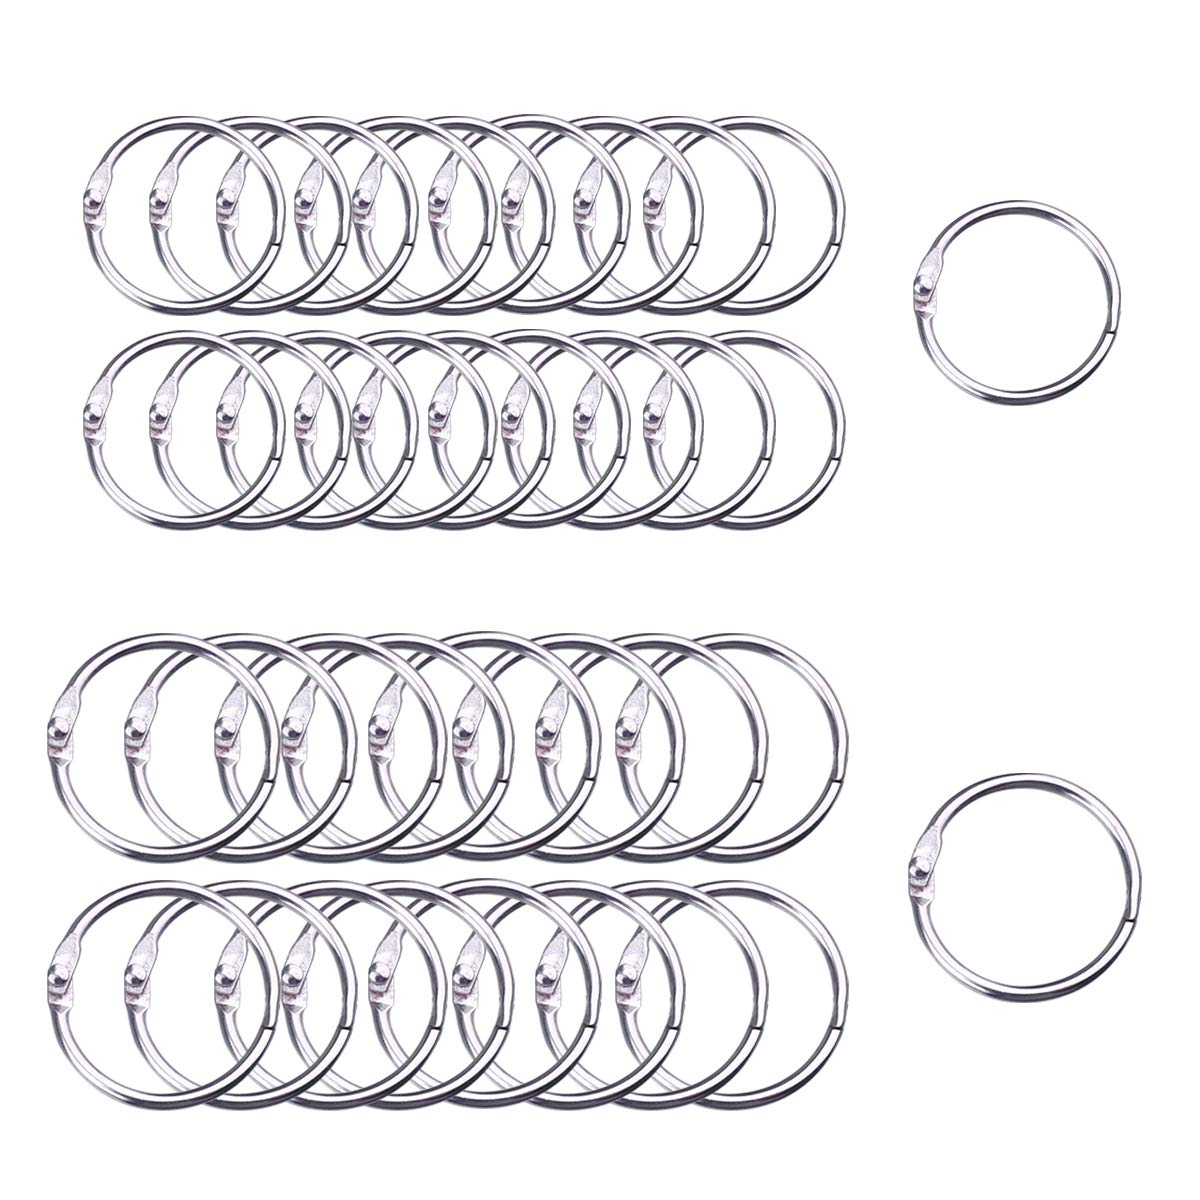 Hautoco 100Pcs Binder Rings, 50pcs Book Rings 1.2 Inch and 50pcs Loose Leaf Binder Rings 1.4 Inch Set for School Office